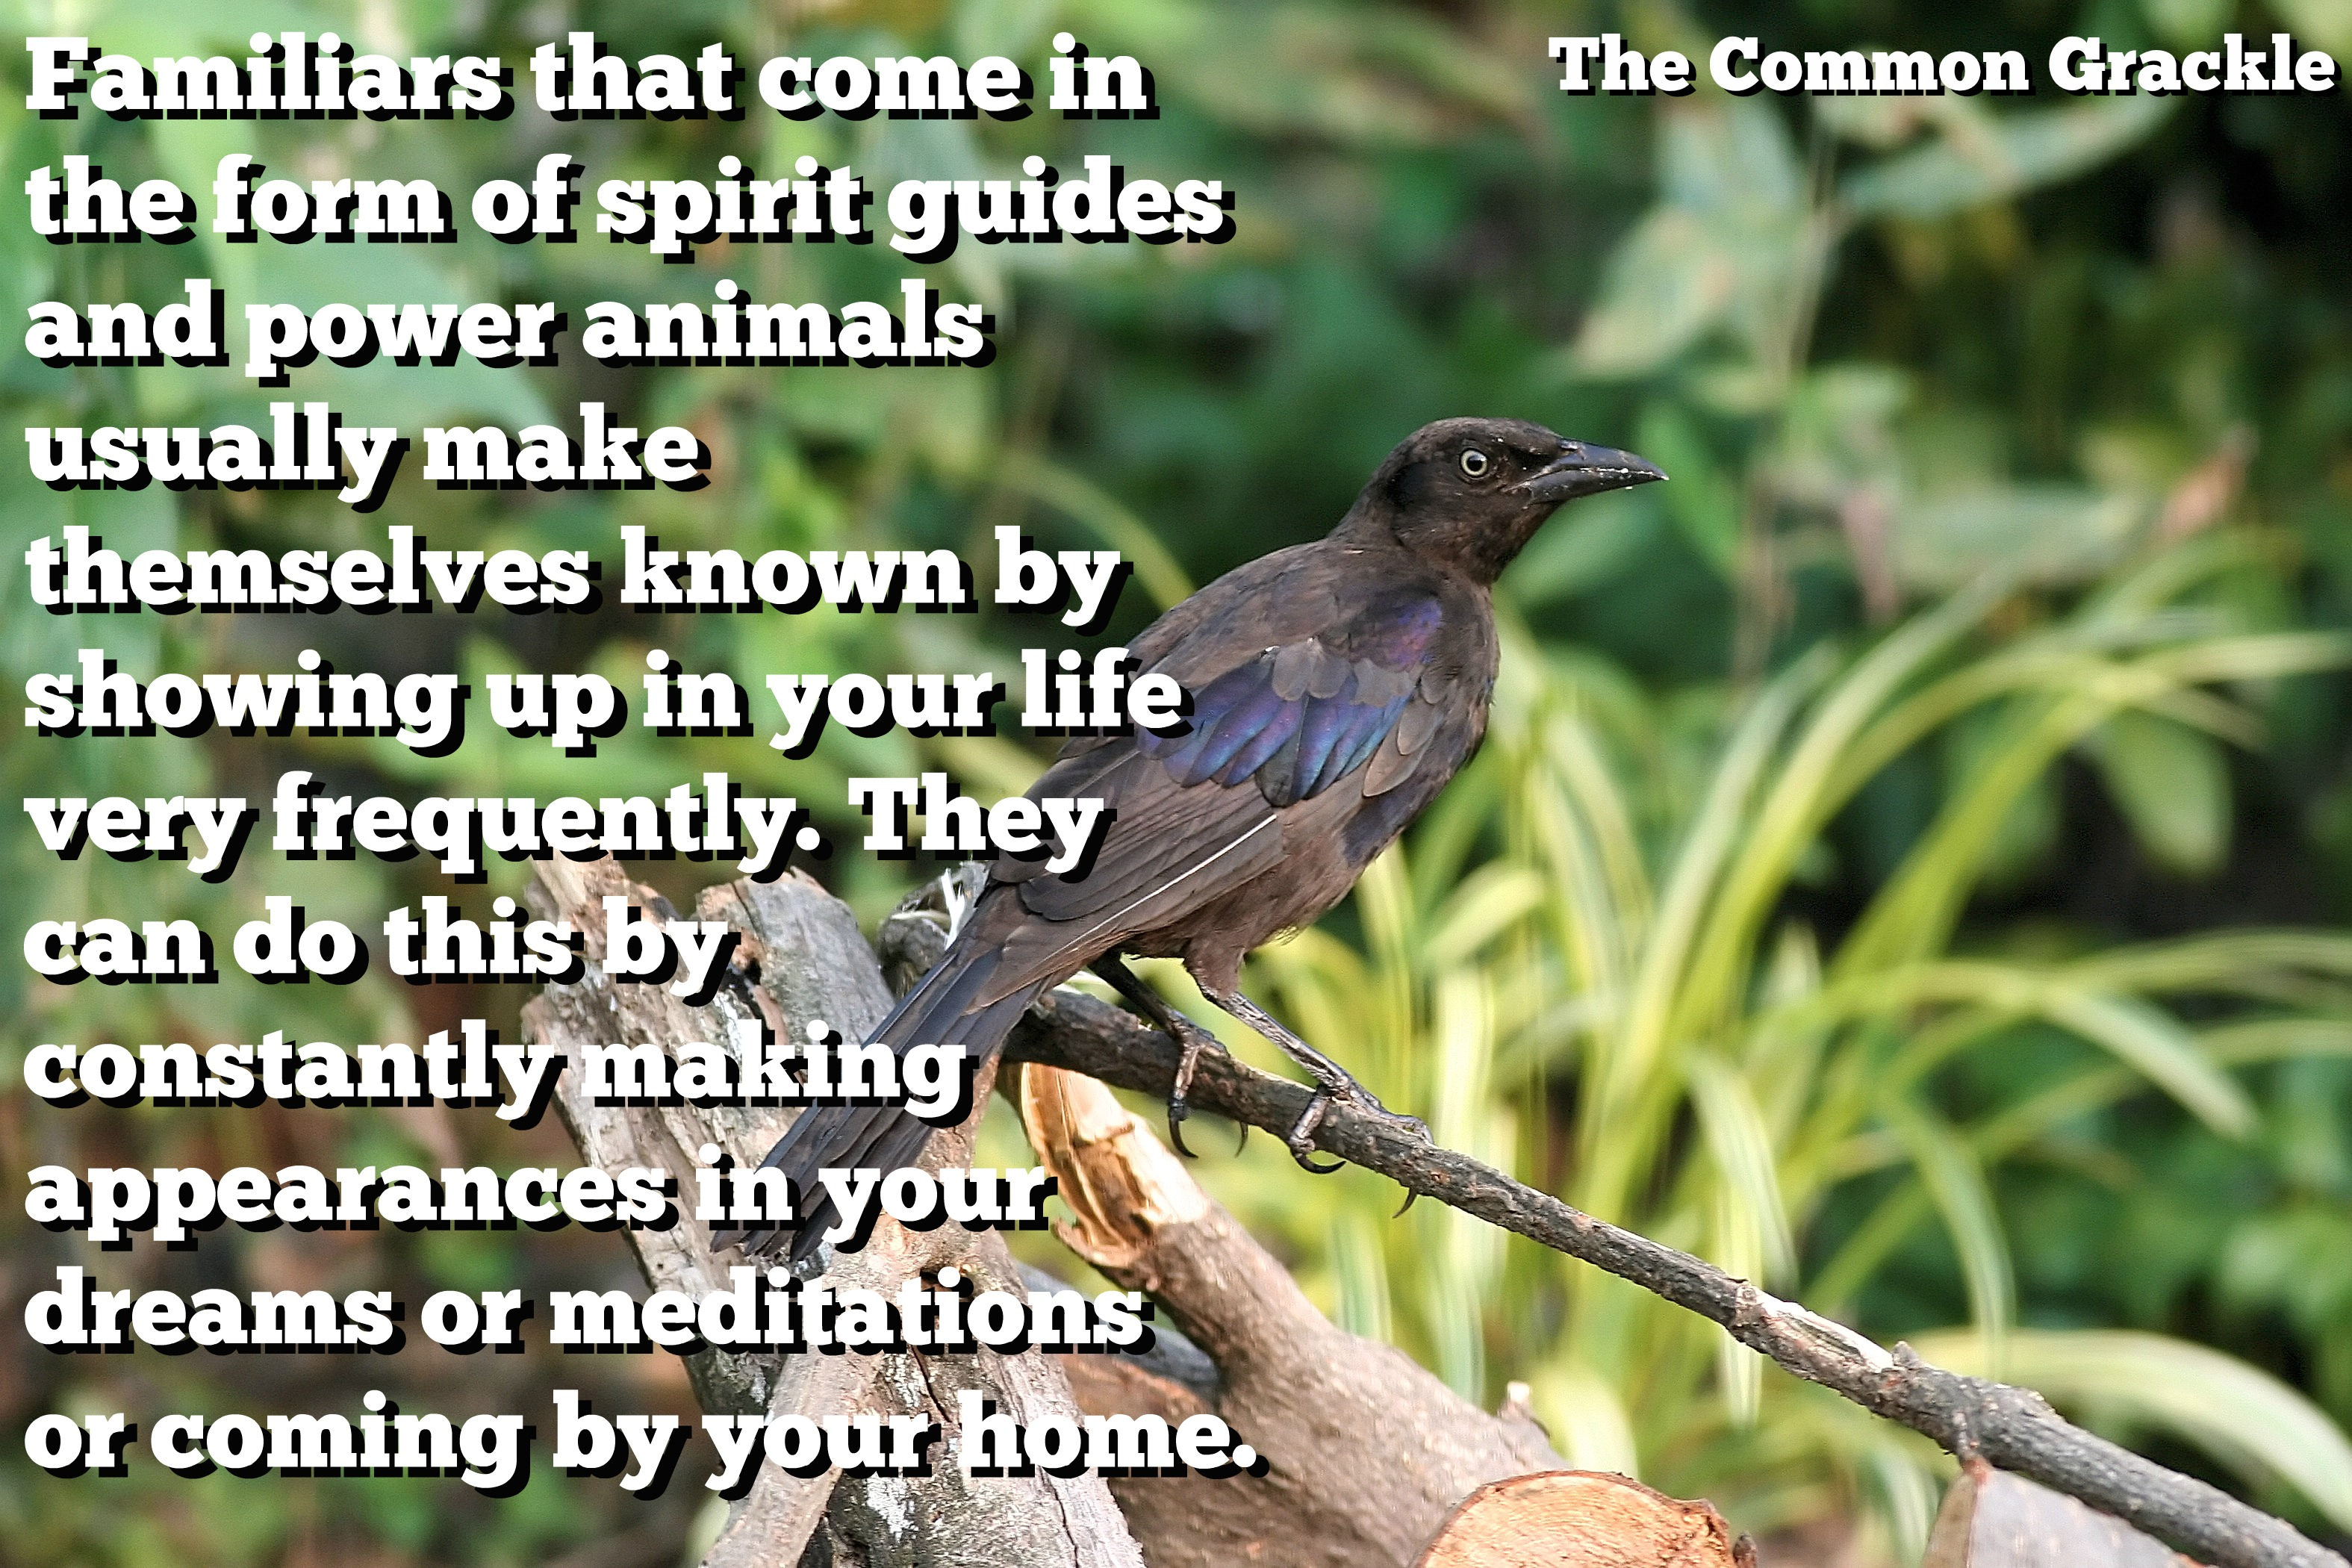 The Witch's Familiar – The Common Grackle